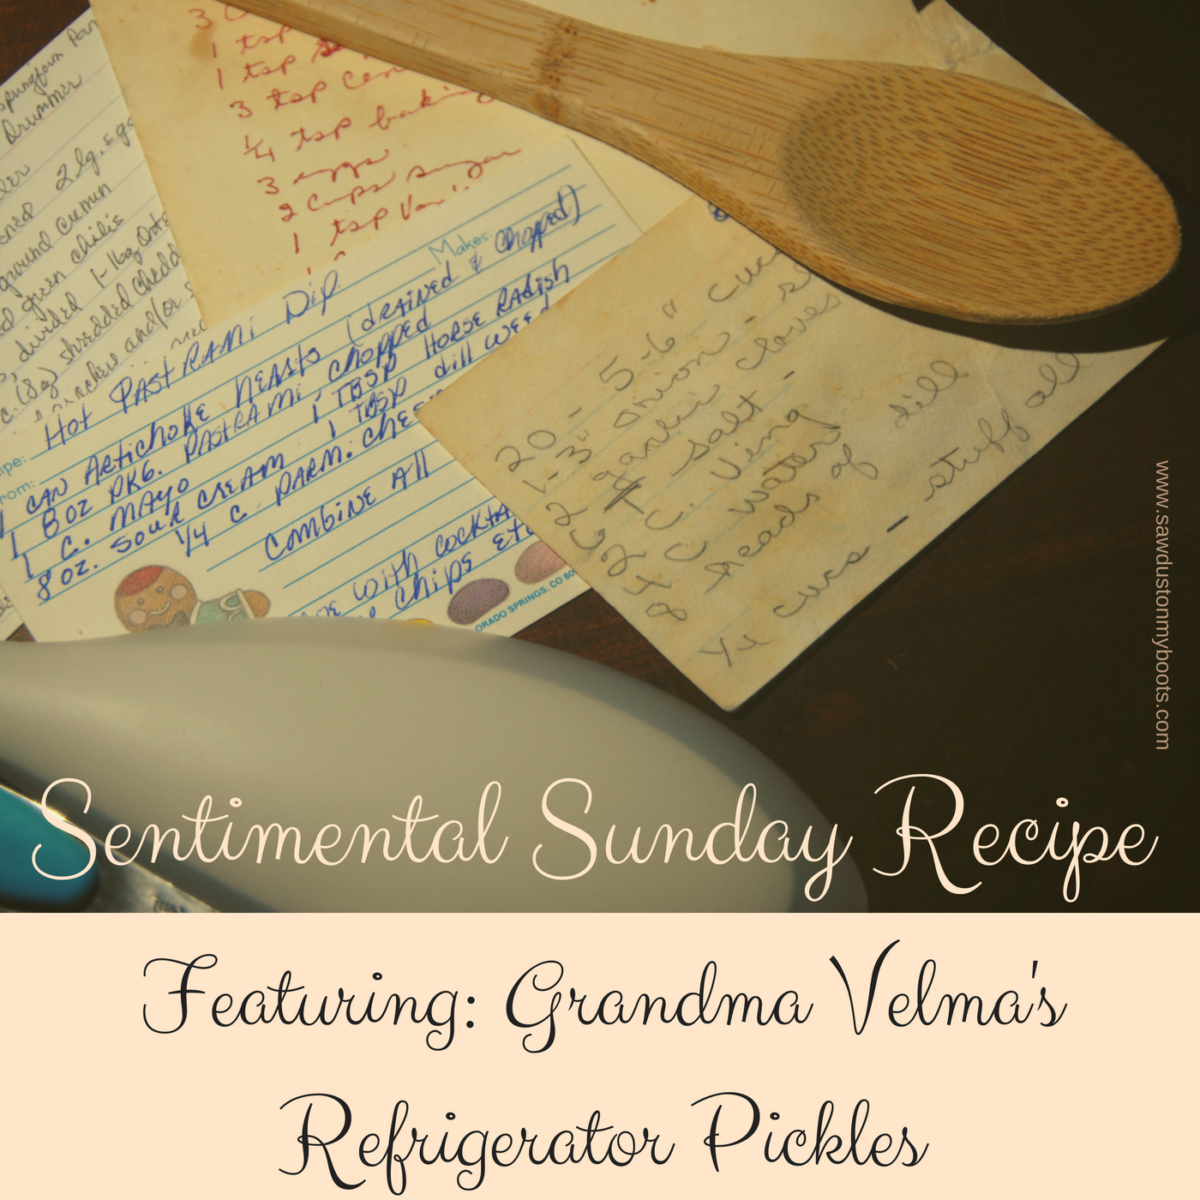 Sunday Sentimental Recipe: Grandma Velma's Refrigerator Pickles